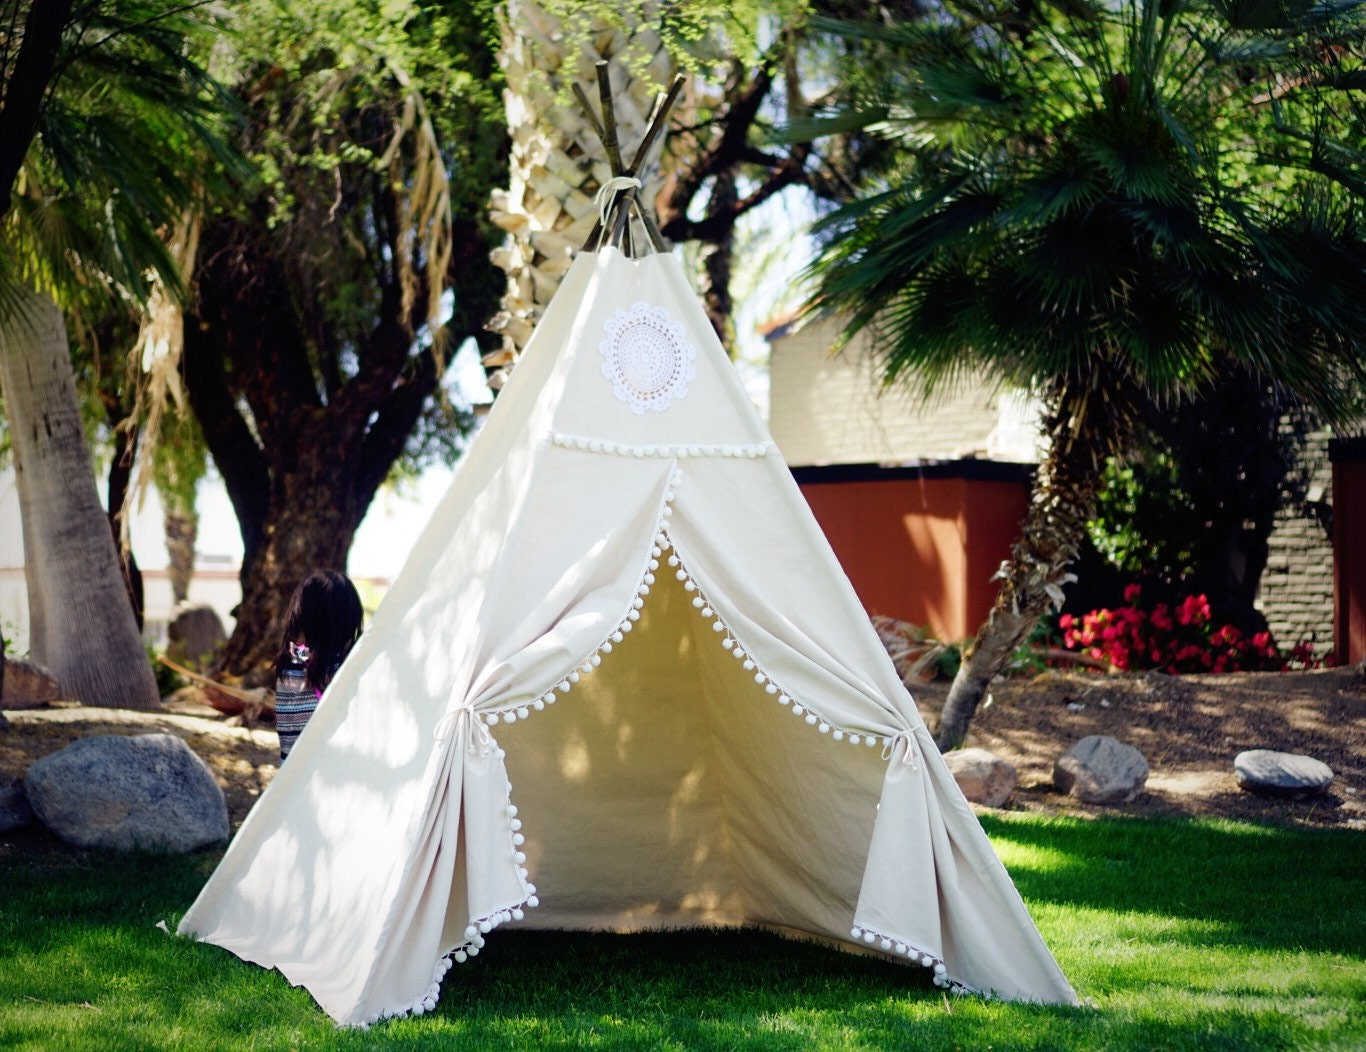 ?zoom & XL Vintage teepee beach teepee 8ft kids Teepee large tipi